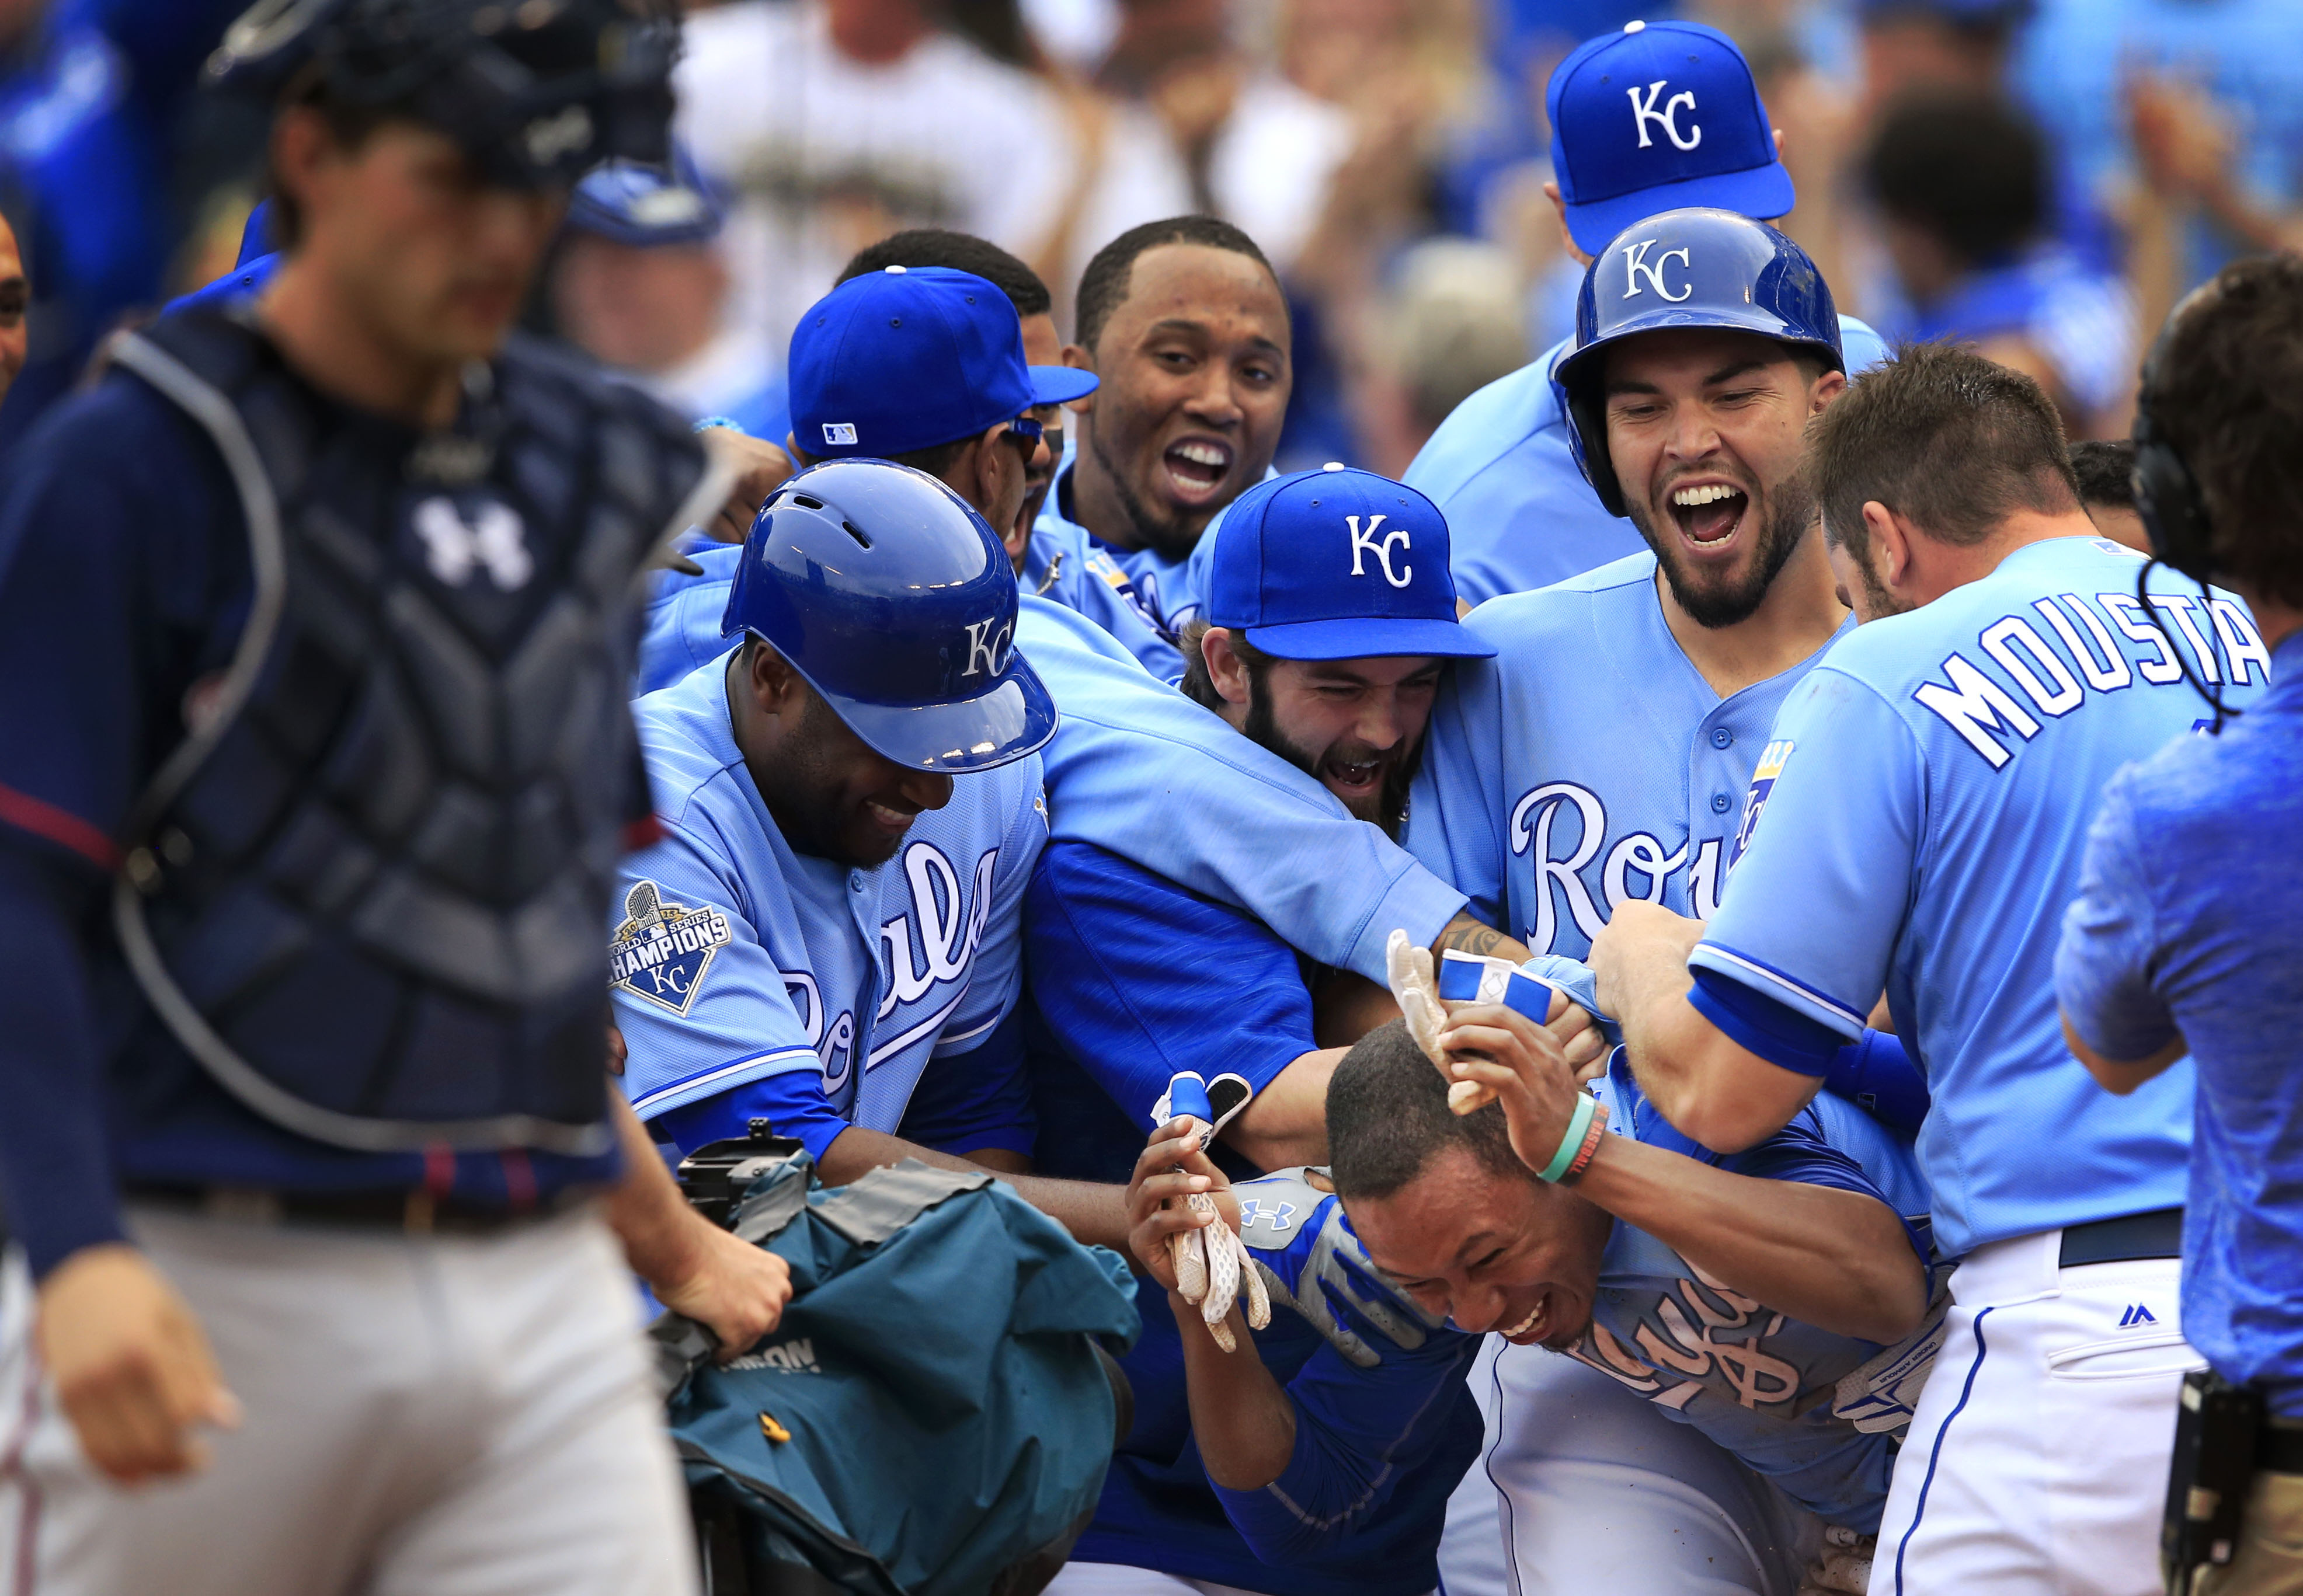 Kansas City Royals players celebrate with teammate Terrance Gore after he scored the winning run during the tenth inning of a baseball game against the Minnesota Twins at Kauffman Stadium in Kansas City, Mo., Sunday, April 10, 2016. The Royals defeated th